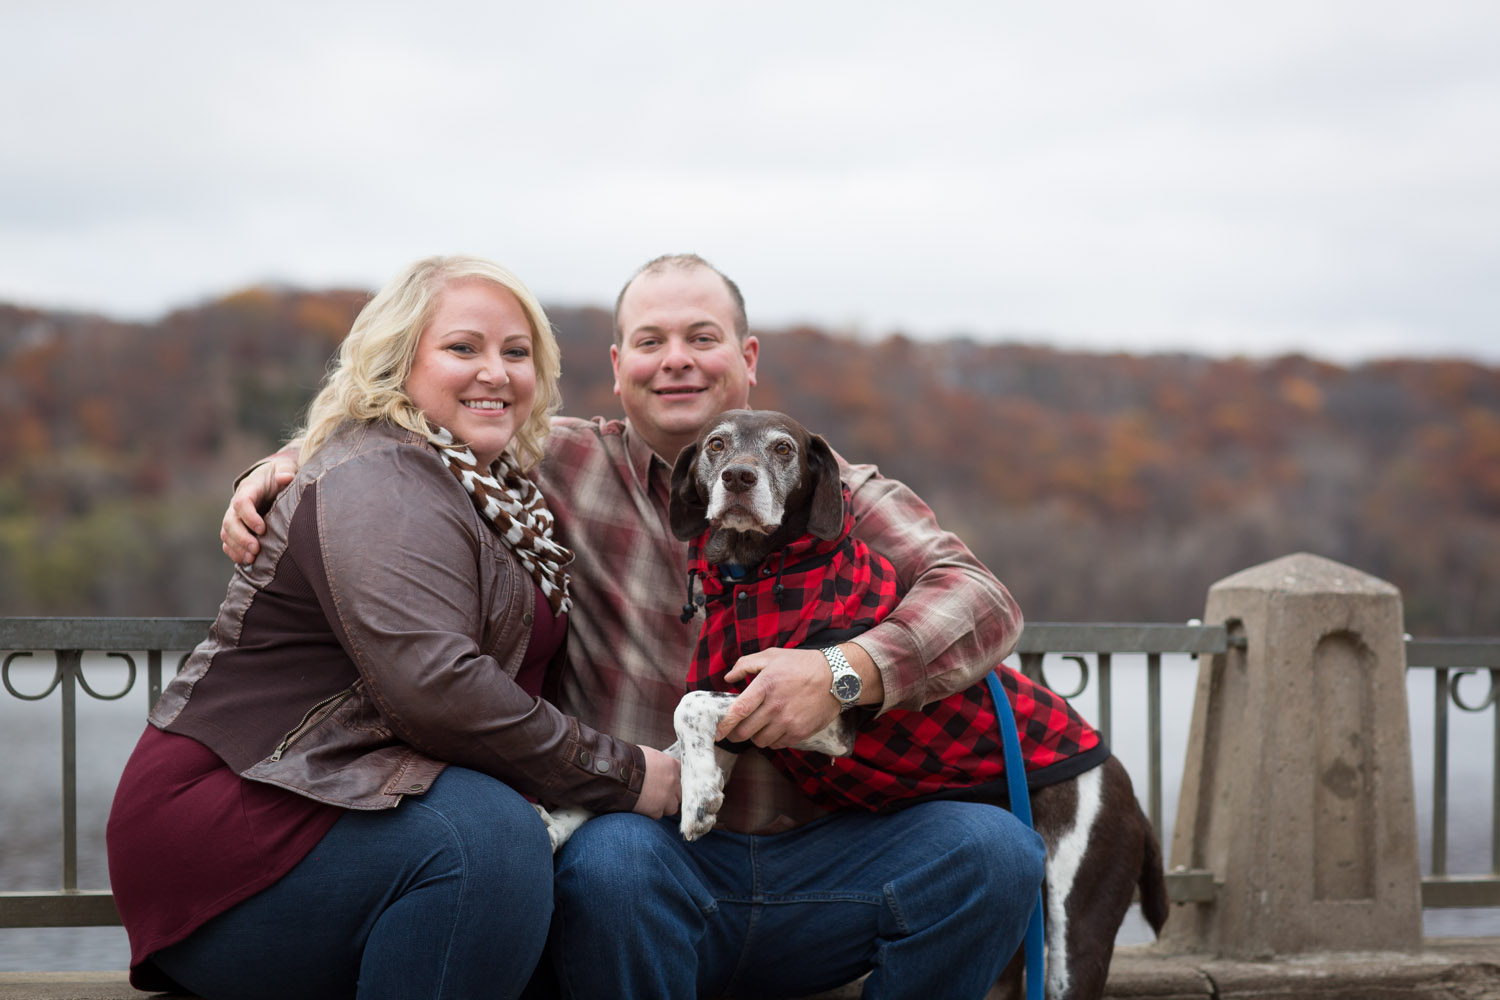 02-mississippi-river-downtown-stillwater-engagement-session-dog-mahonen-photography.jpg